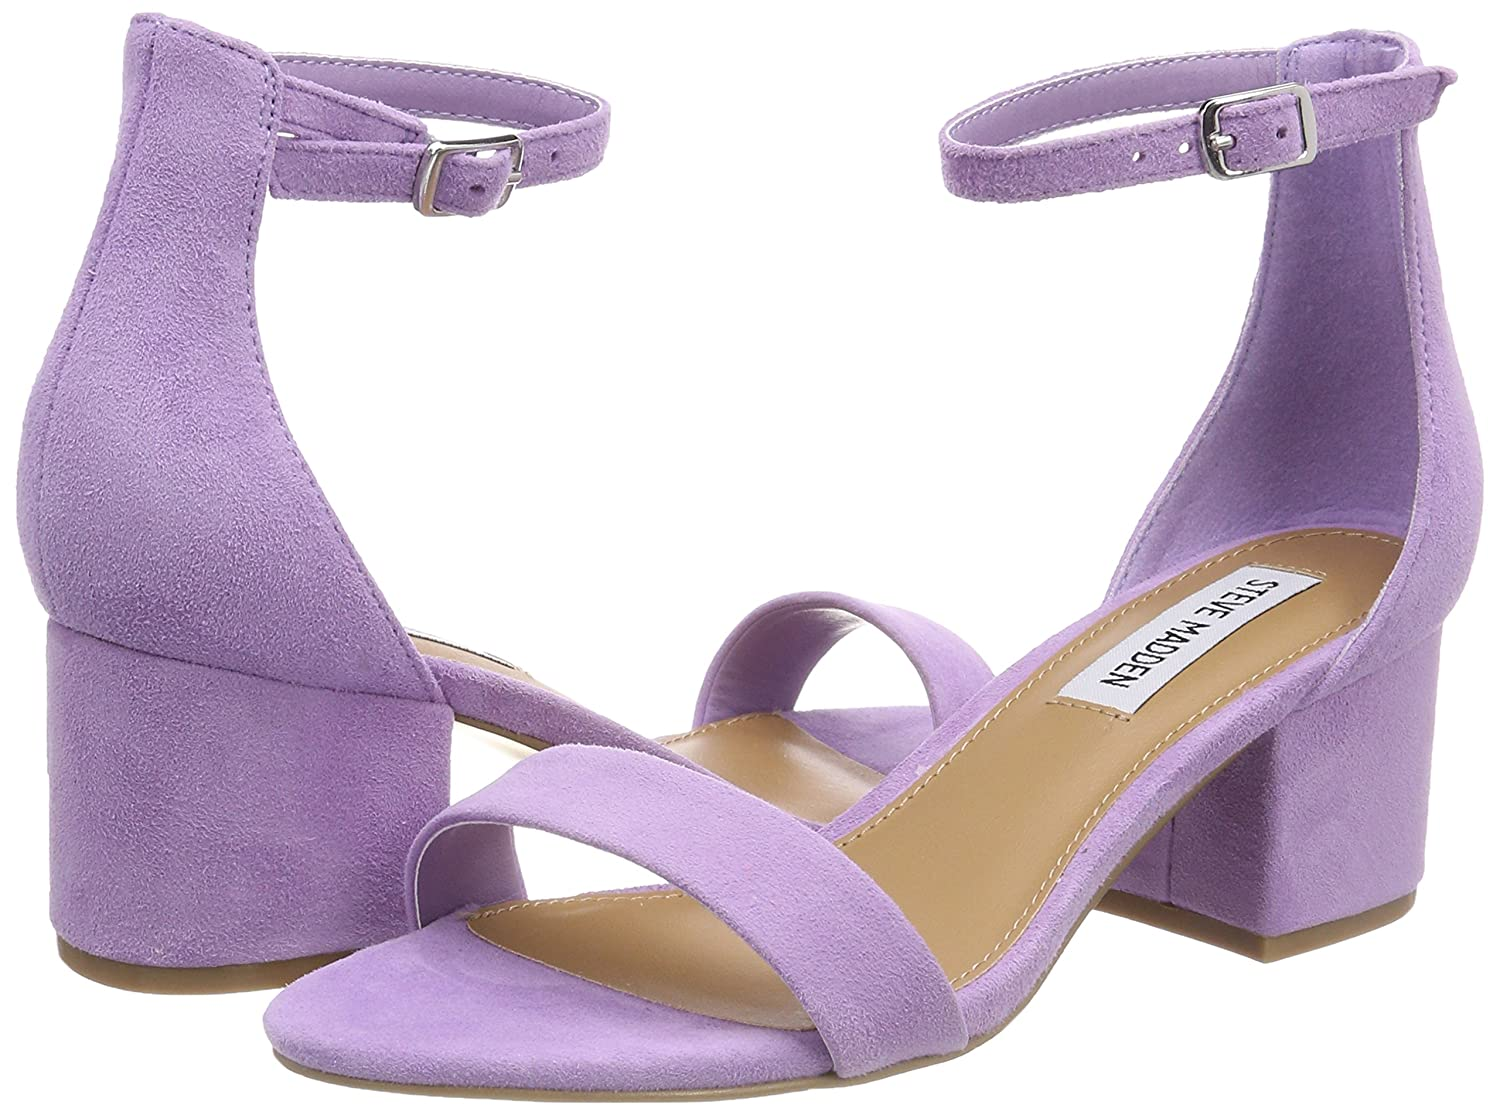 617be31d7d3 Steve Madden Women s Irenee Ankle Strap Sandals Purple (Lavender) 7 UK  Buy  Online at Low Prices in India - Amazon.in